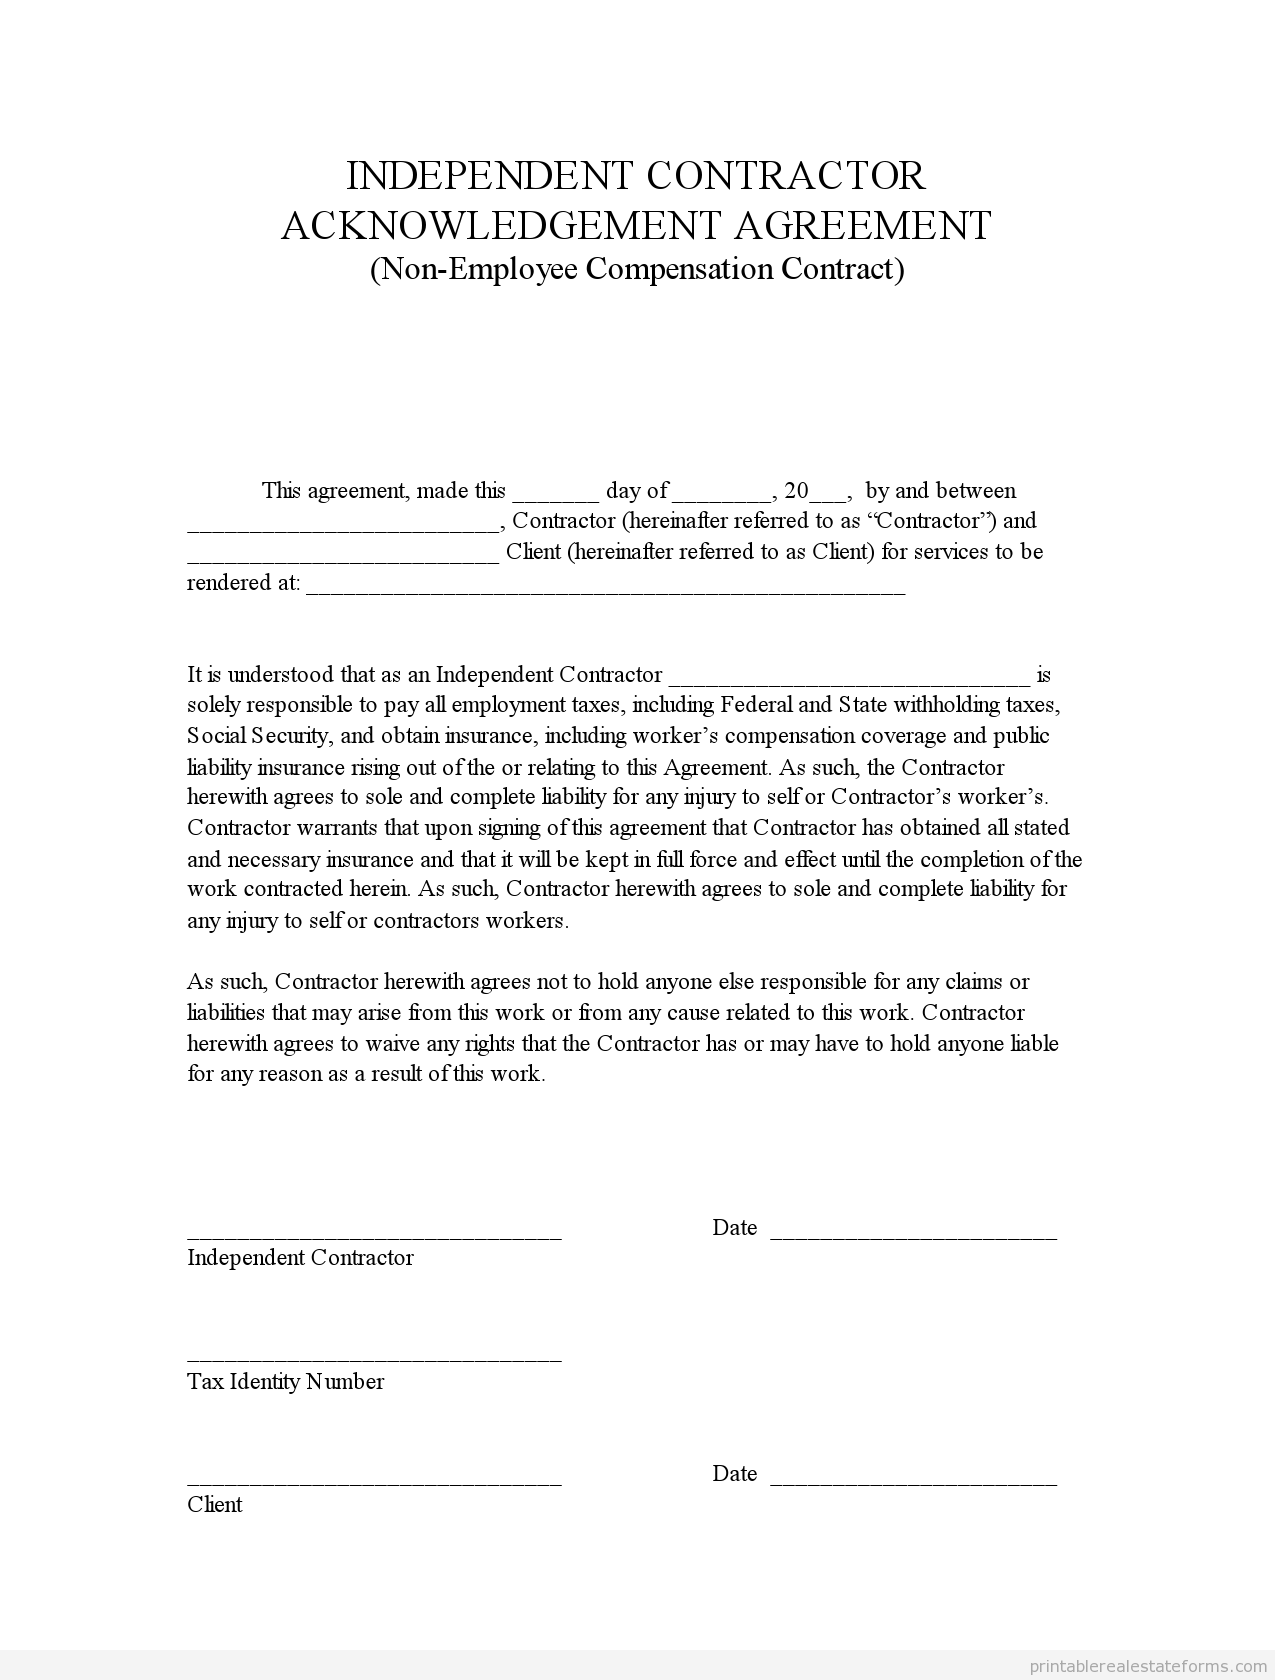 Sample printable indep contractor acknowledgement agreement form sample printable indep contractor acknowledgement agreement form platinumwayz